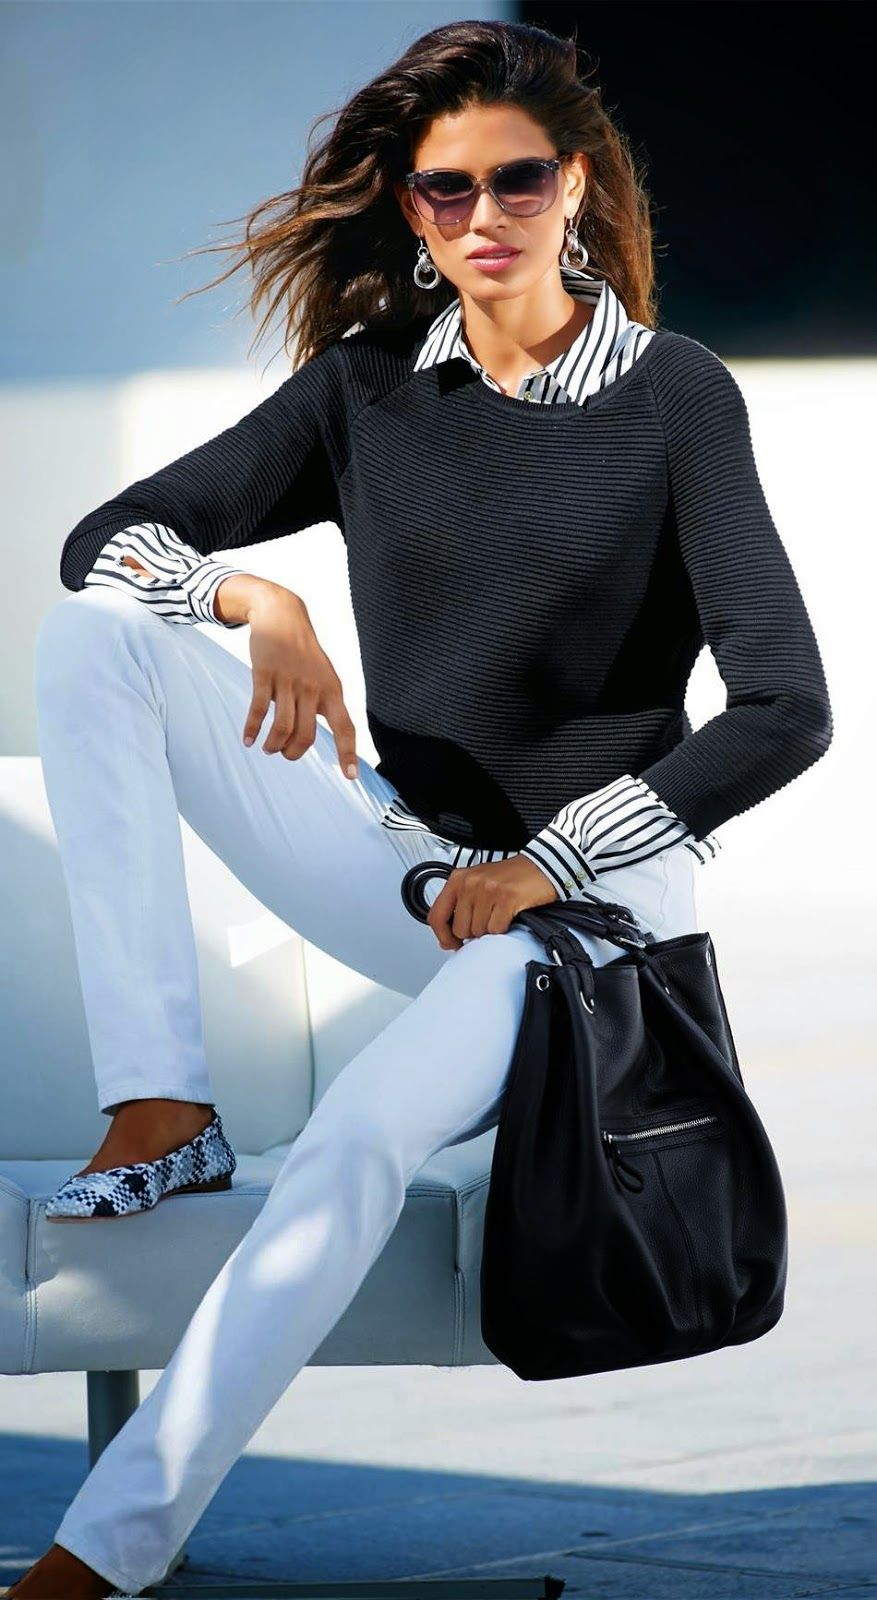 Madeleine Sweater, Blouse, and Skinny Jeans